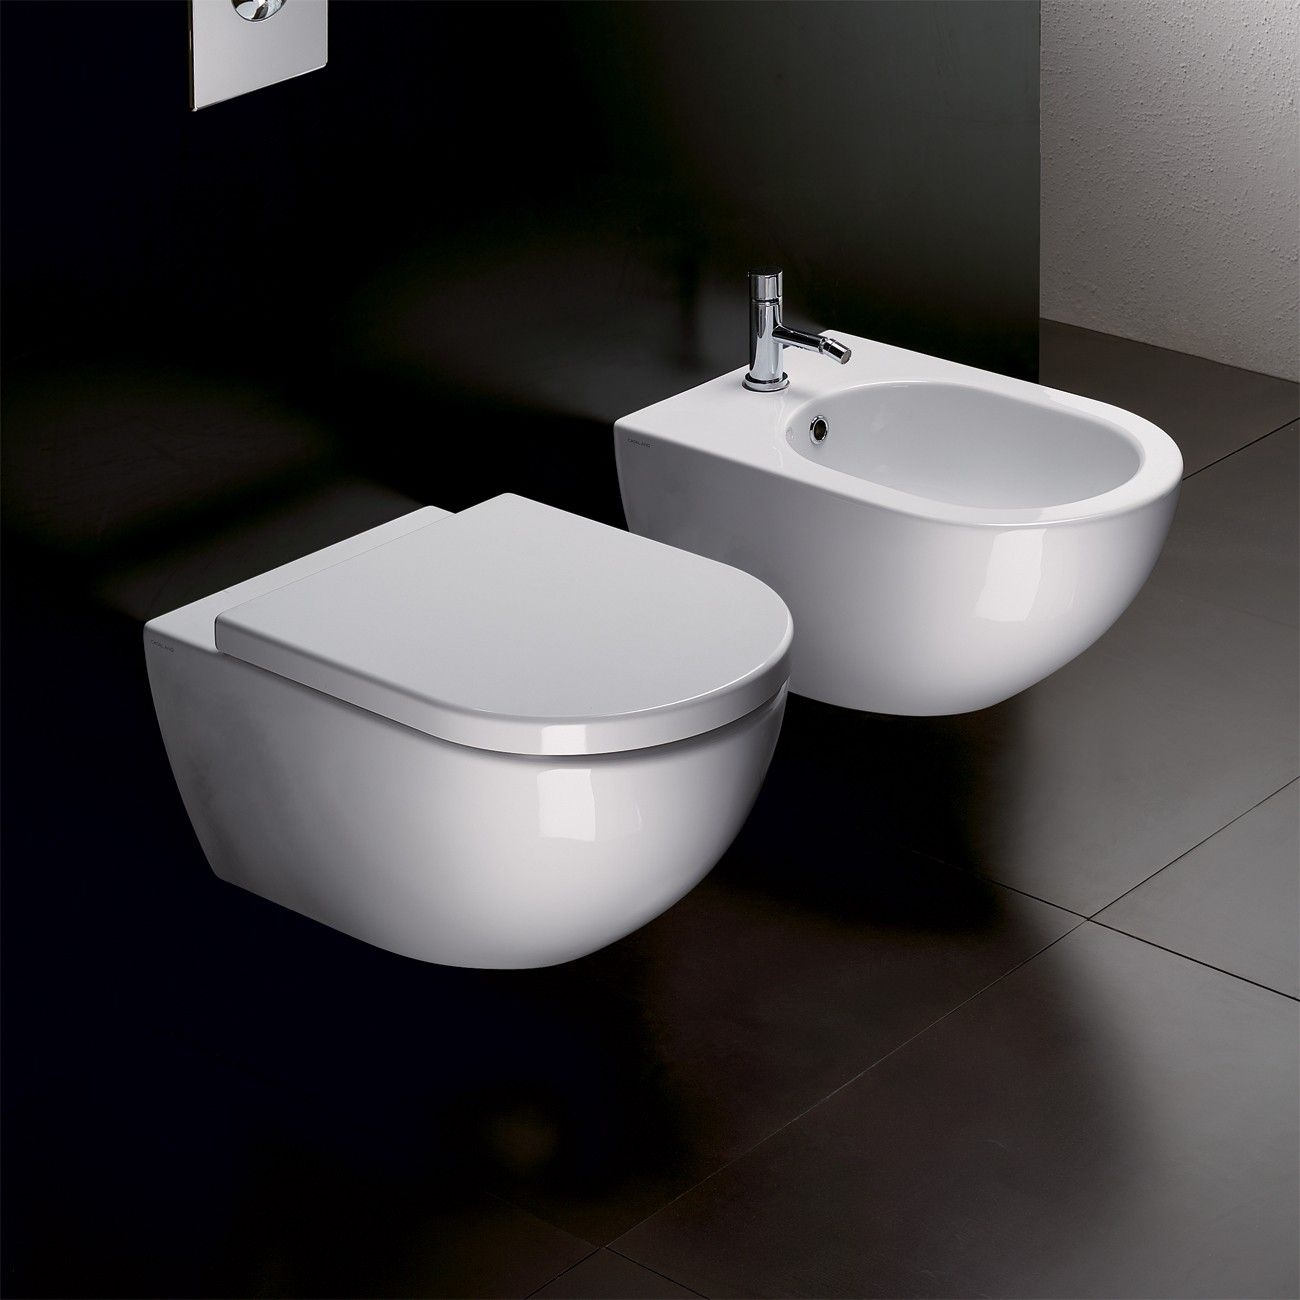 Wall hung bathroom suites - Catalano Sfera Wall Hung Toilet With Standard Seat And Cistern With Button Rogerseller Toilet Suitessmall Bathroombathroom